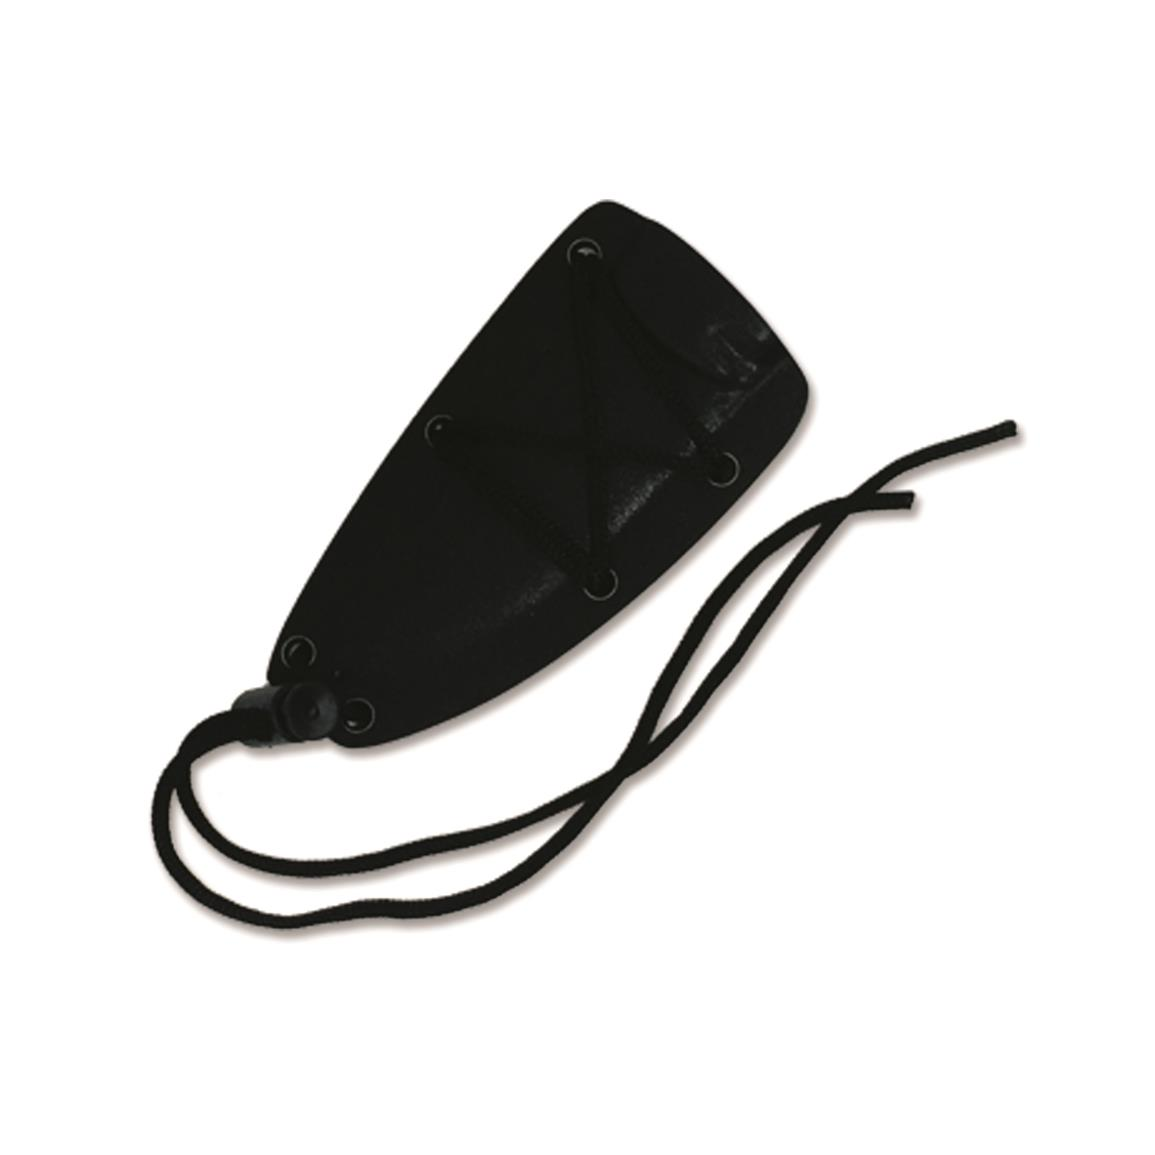 Includes black injection-molded sheath with cord lanyard